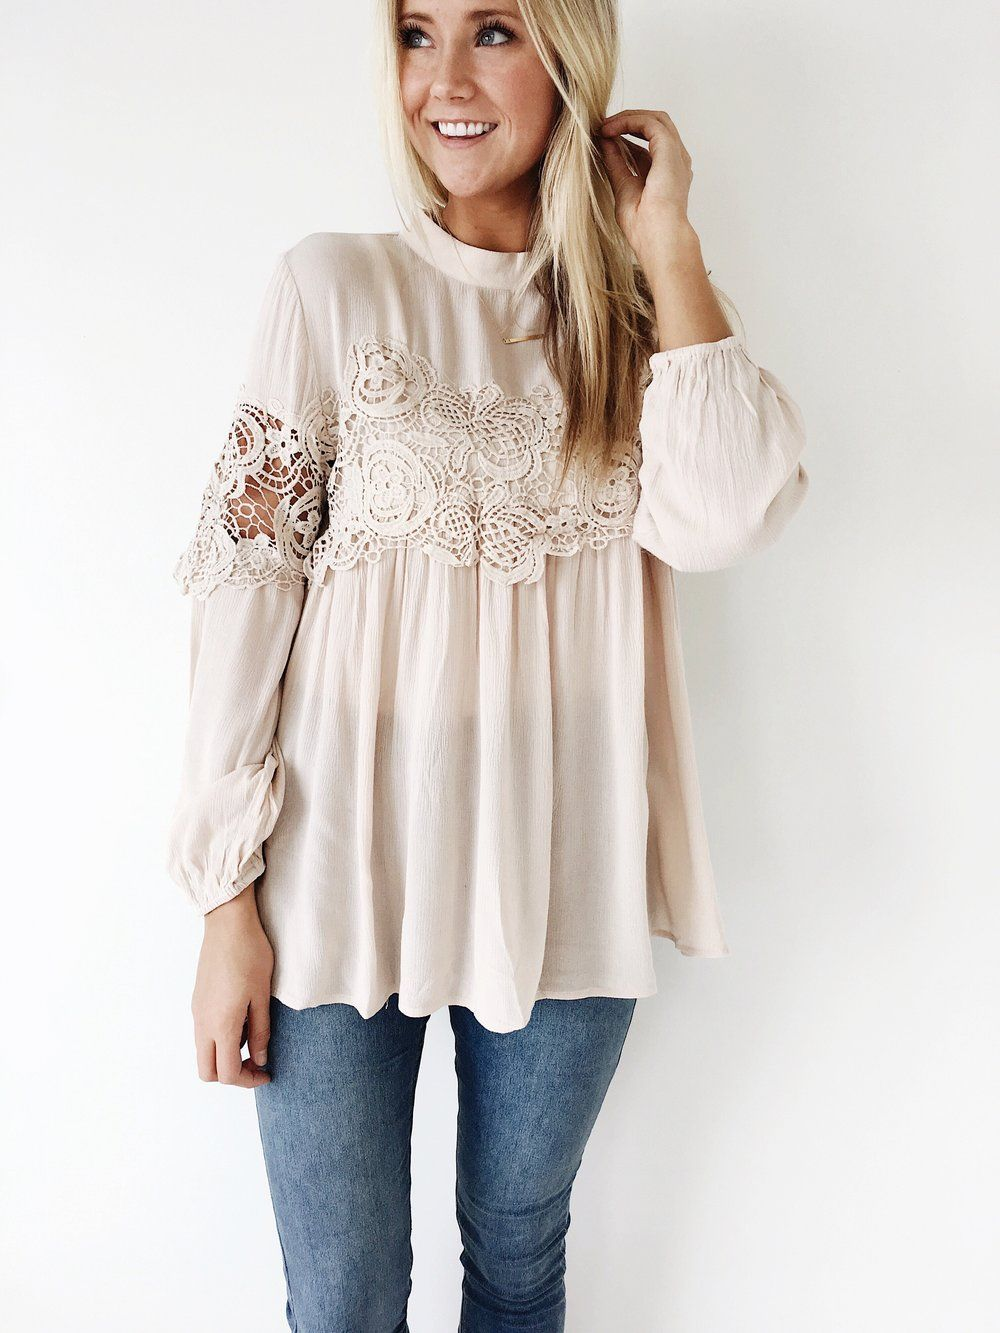 1b9f098f78022 Hopeless Romantic Blouse